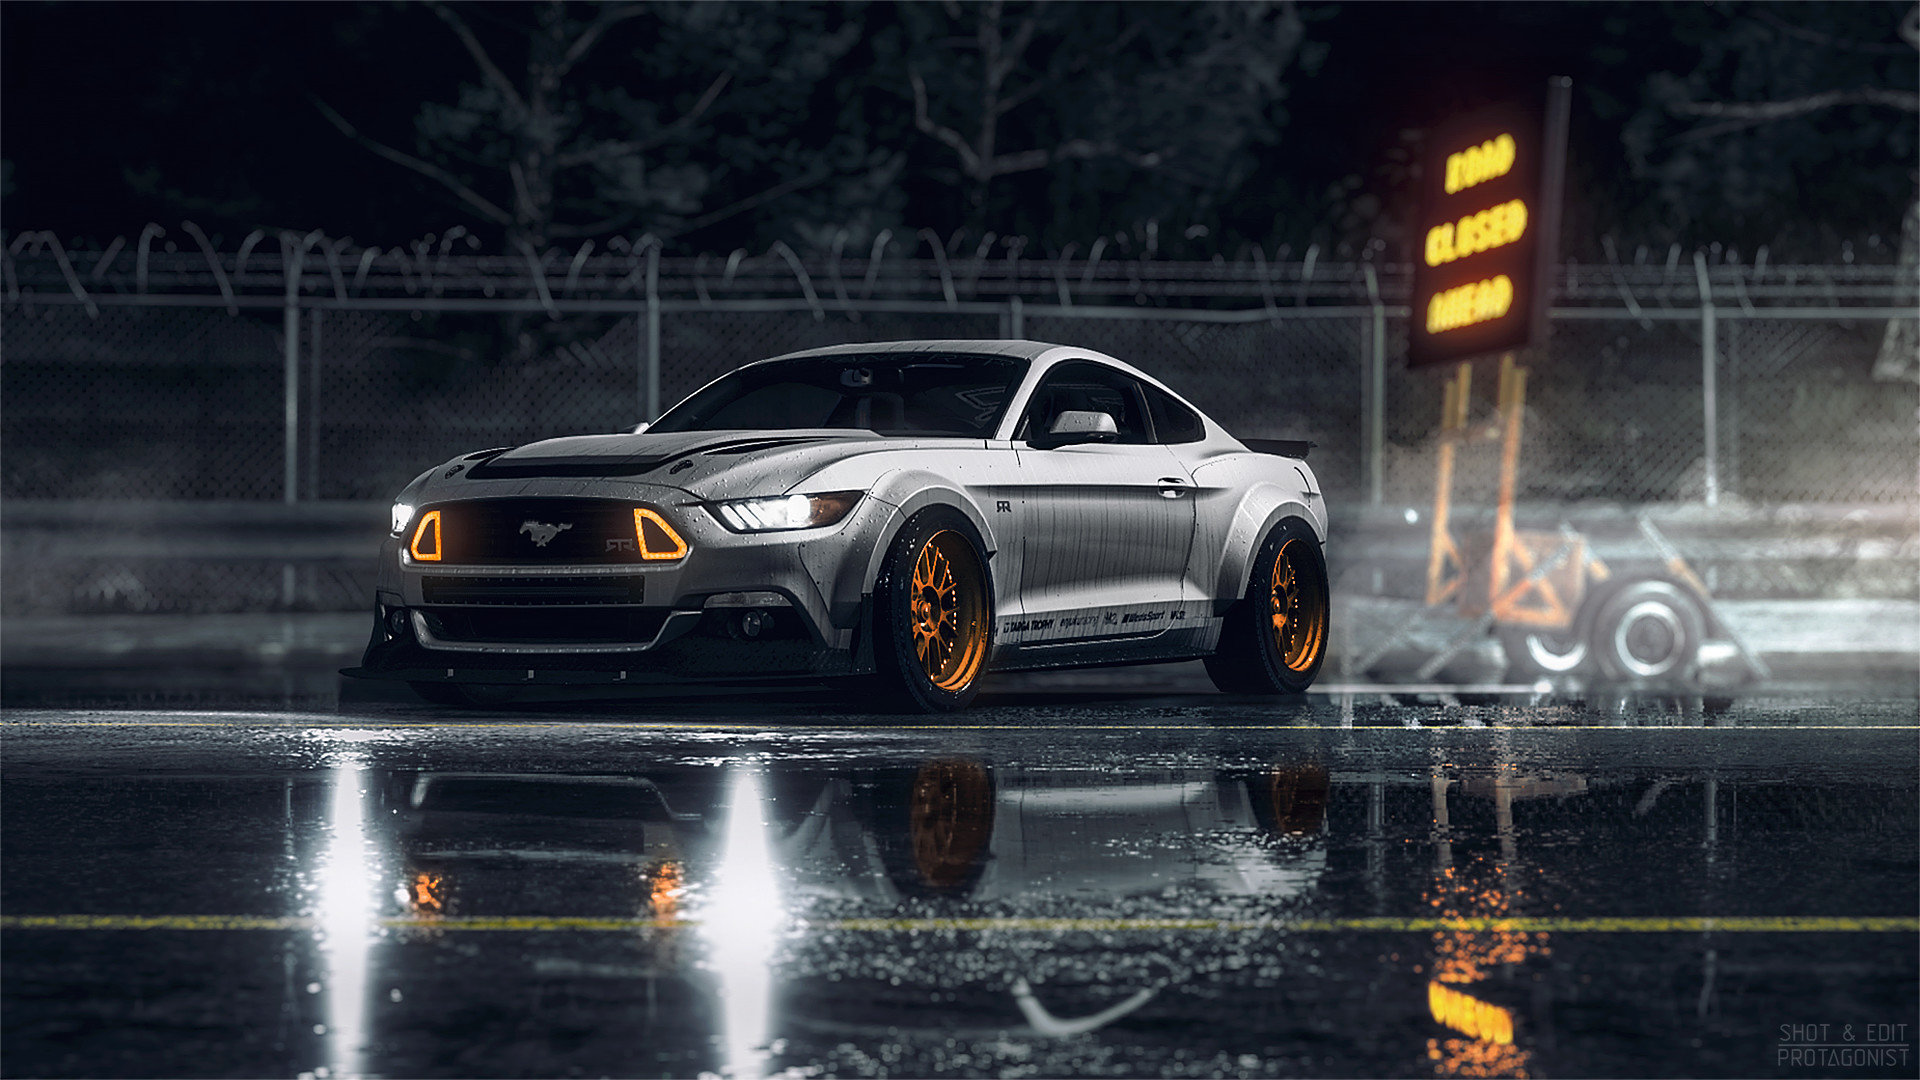 Need For Speed 2015 wallpapers HD for desktop backgrounds 1920x1080